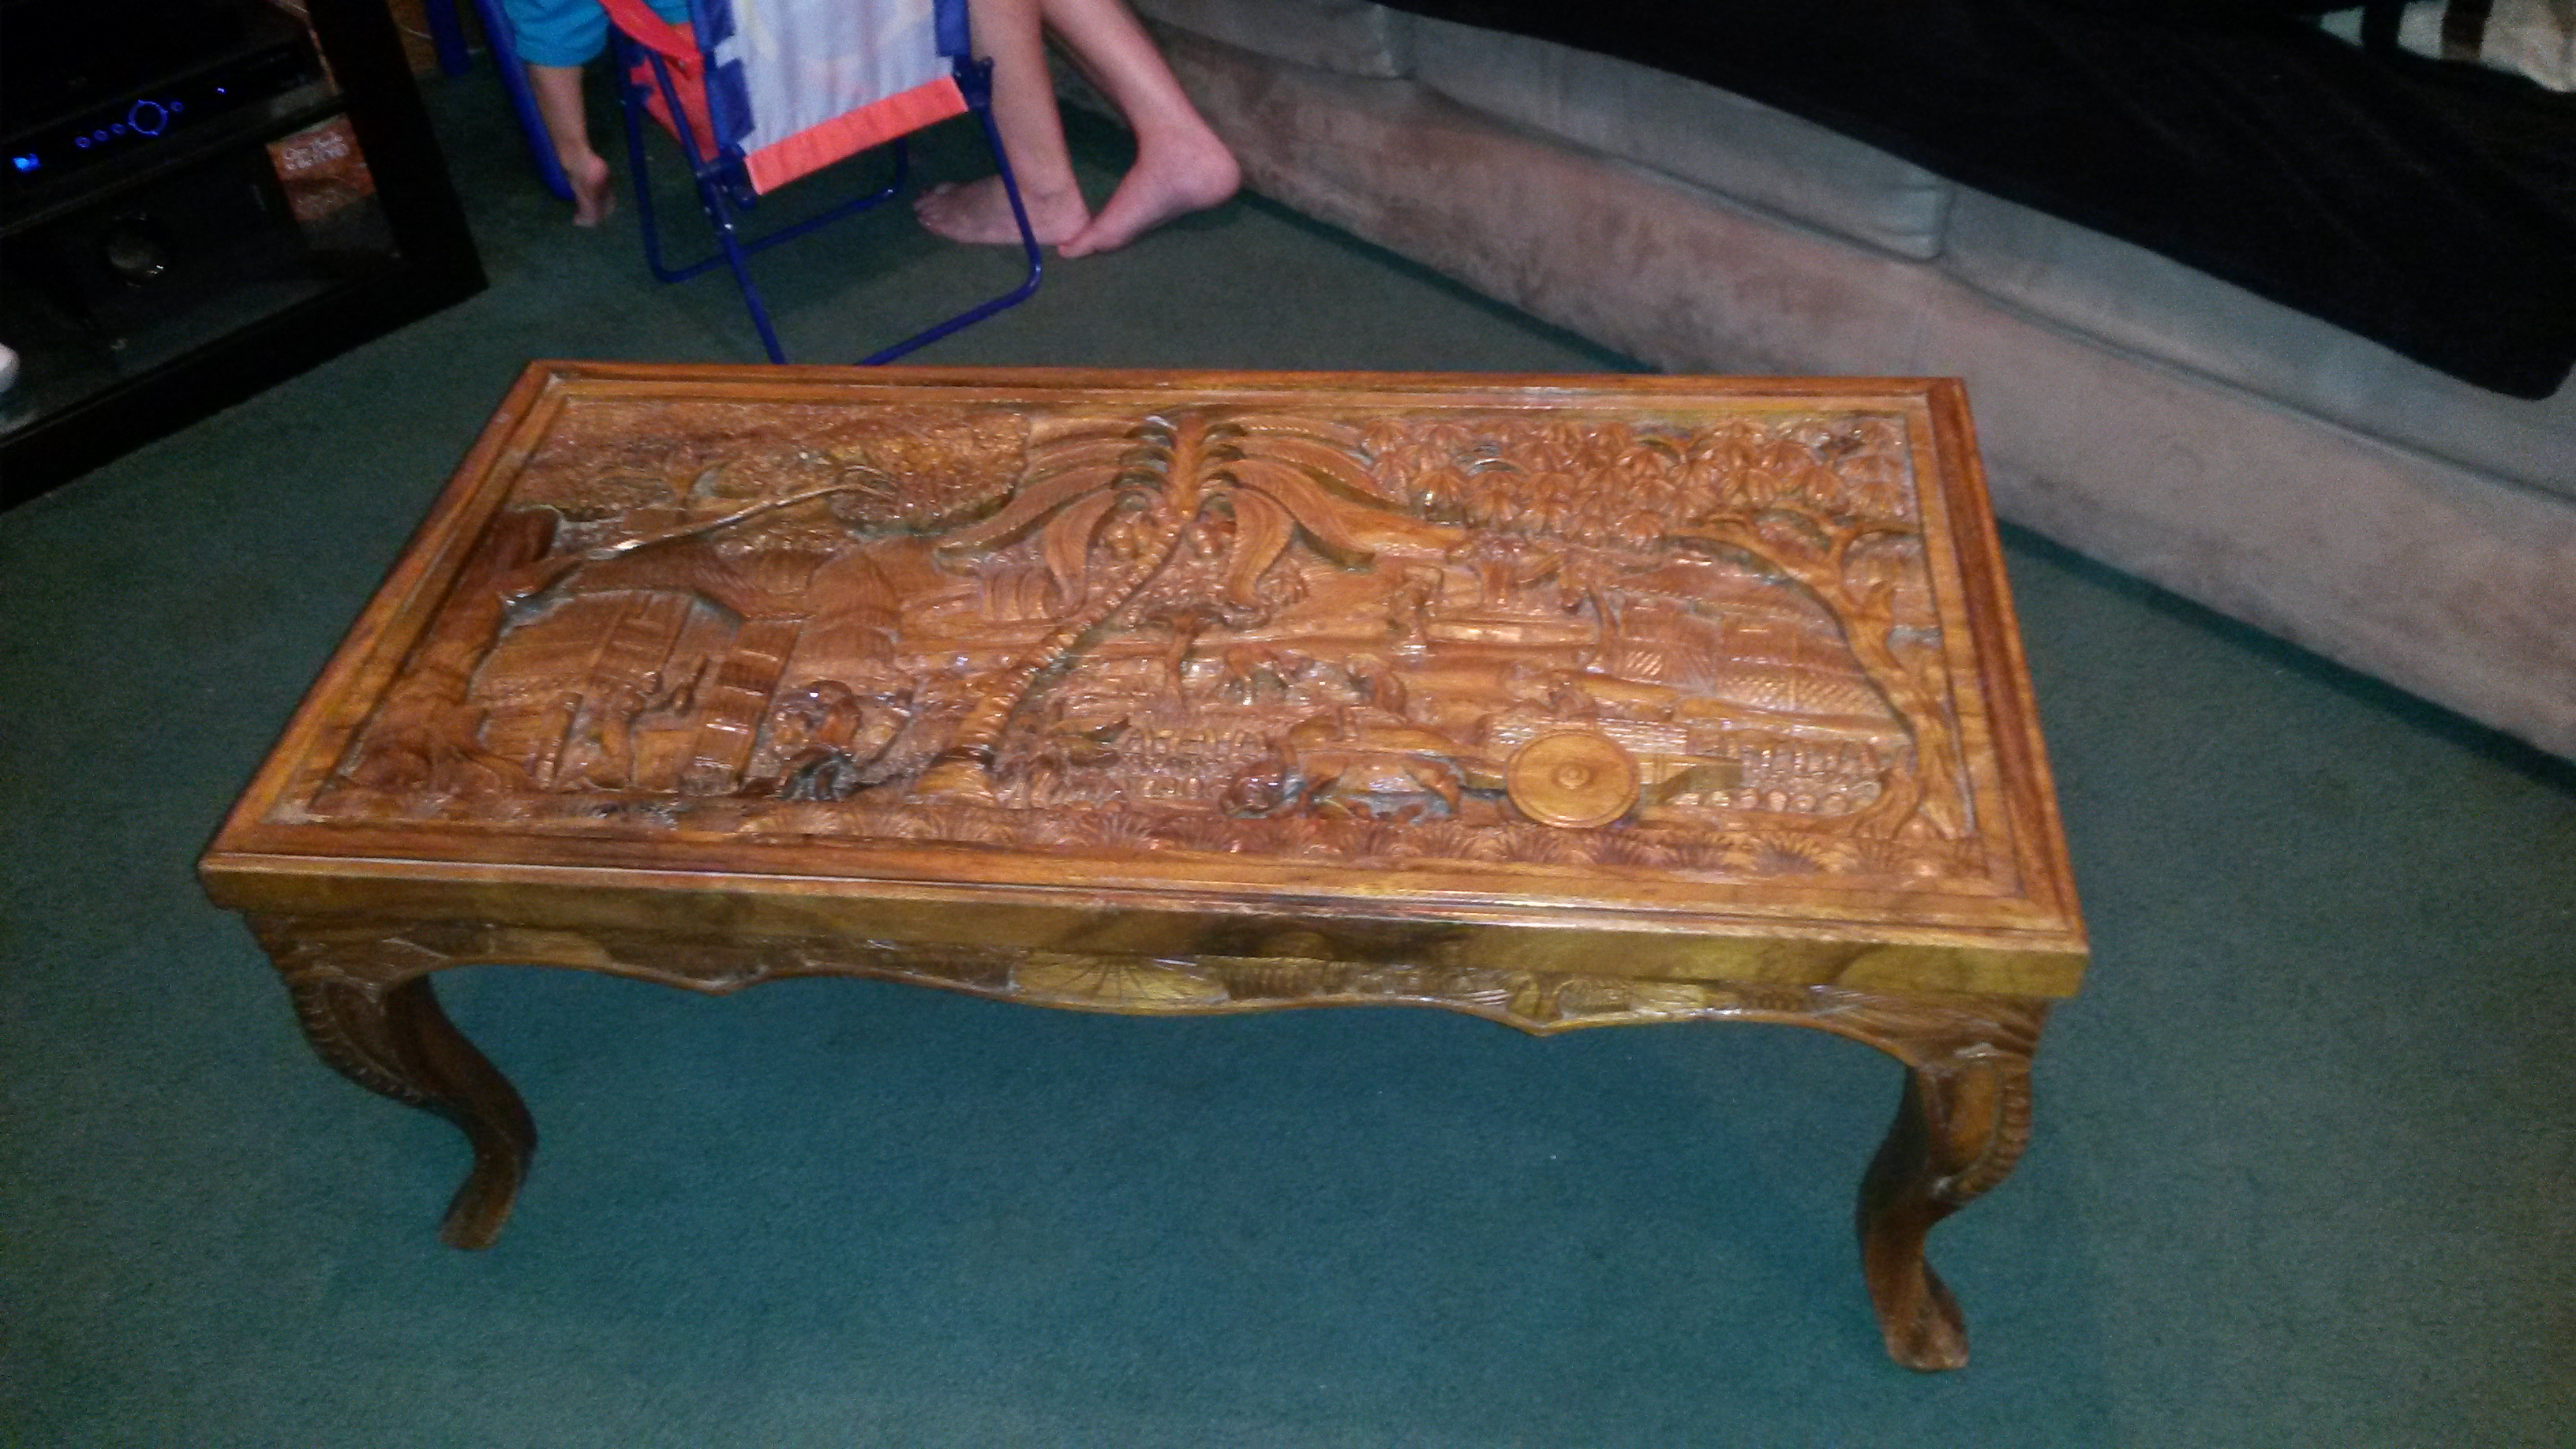 Lovely Antique Hand Carved Coffee Table Appraisal Instappraisal